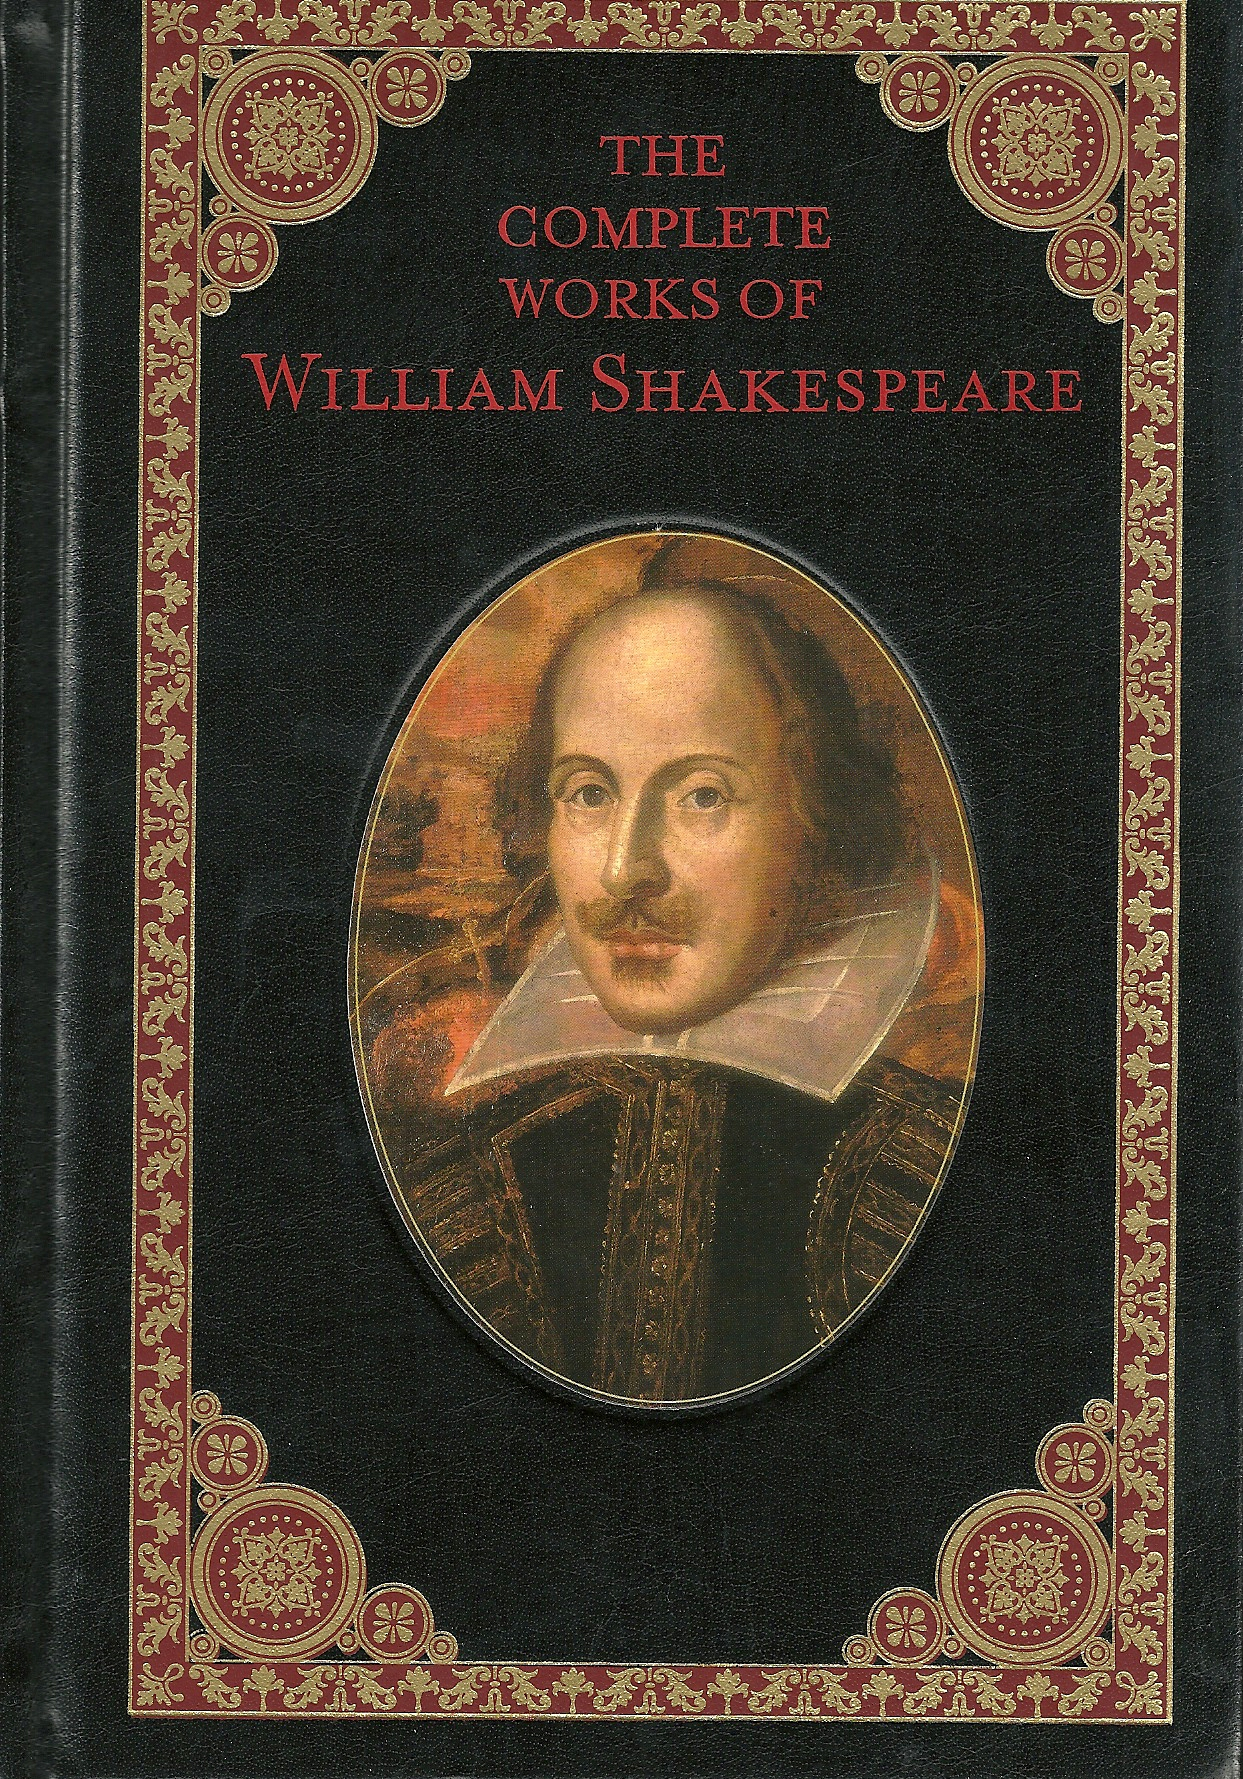 an argument against the identity of william shakespeare Shakespeare's hand unknown in sir thomas more : thompson, dawson, and the futility of the paleographic argument michael l hays shakespeare quarterly, volume 67.